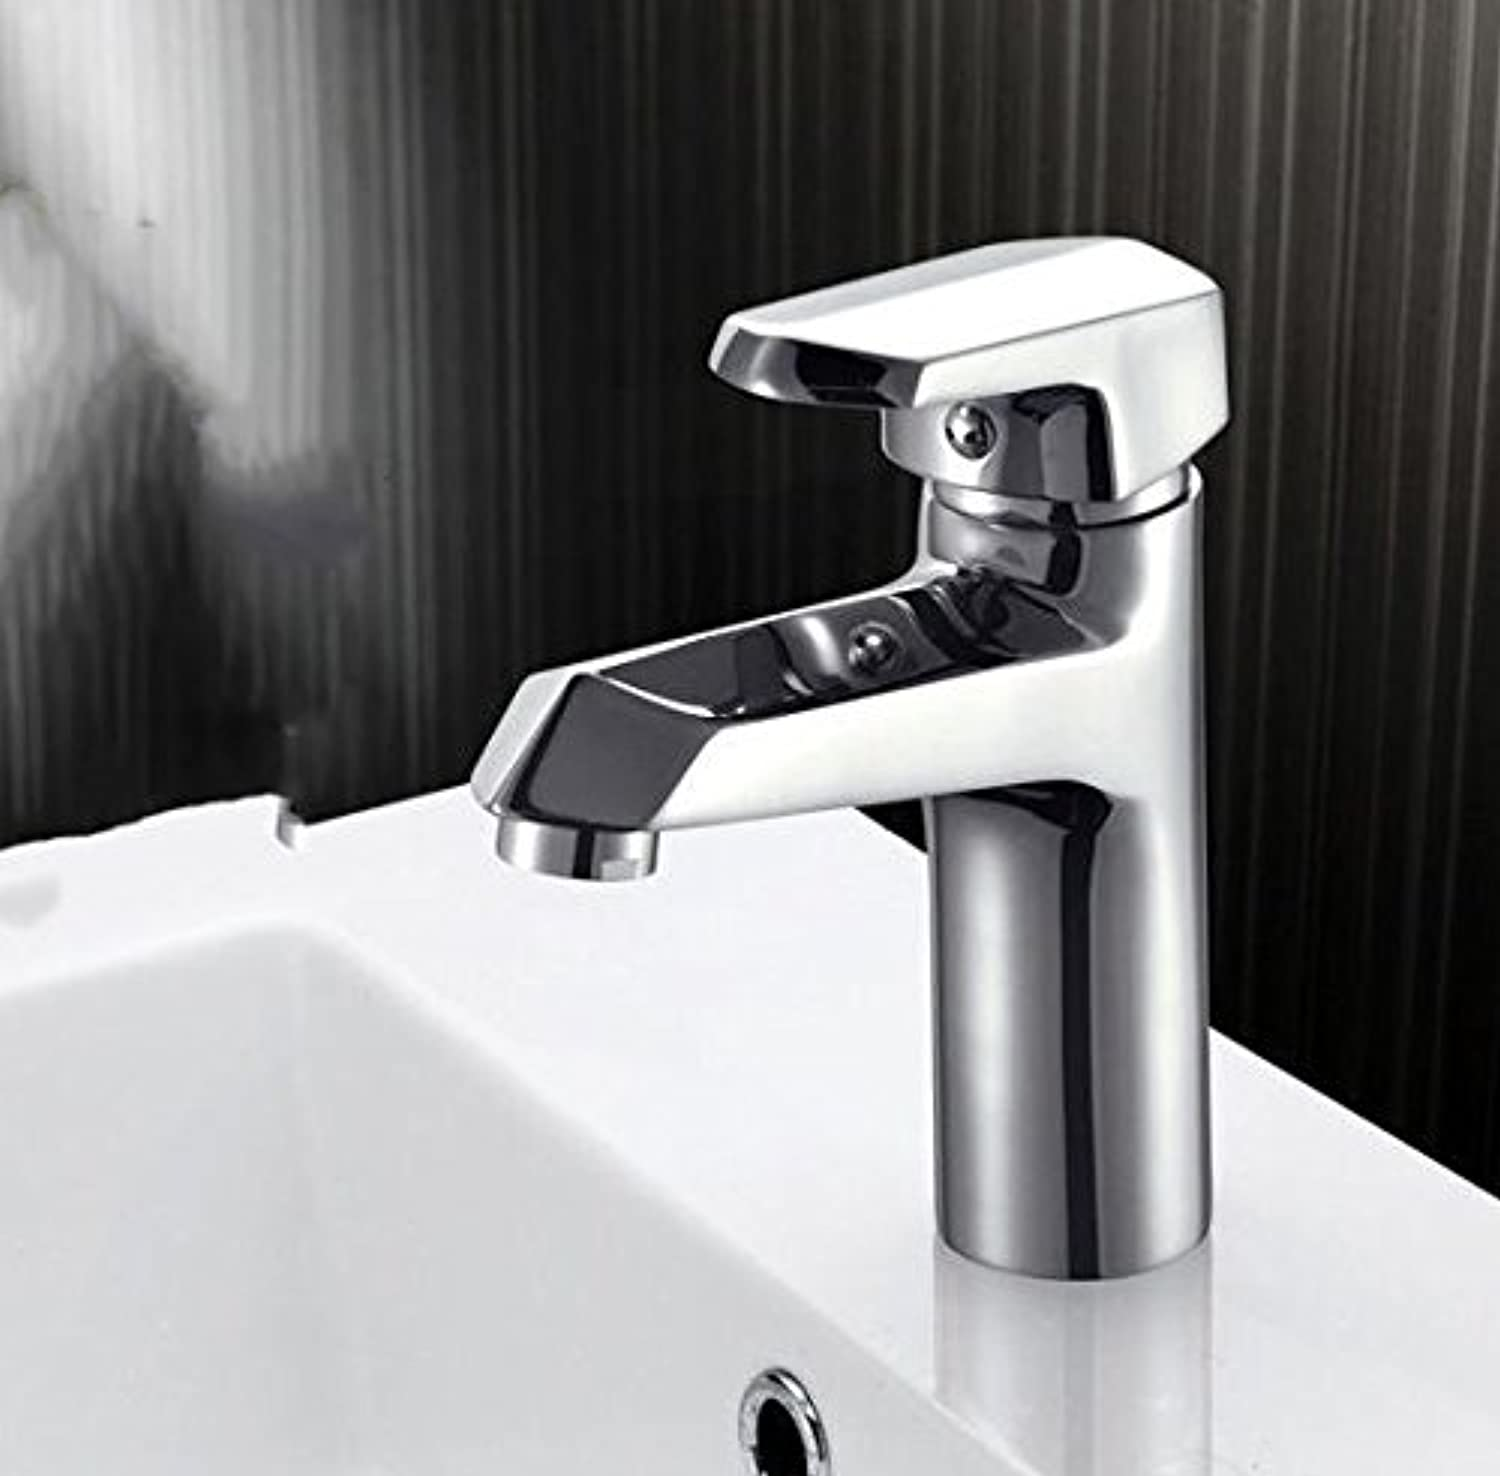 Diongrdk Single Hole Toilet Sink Basin Faucet Mixer Water Tap, Bathroom Wash Basin Faucet Chrome, Brass Basin Faucet Hot and Cold